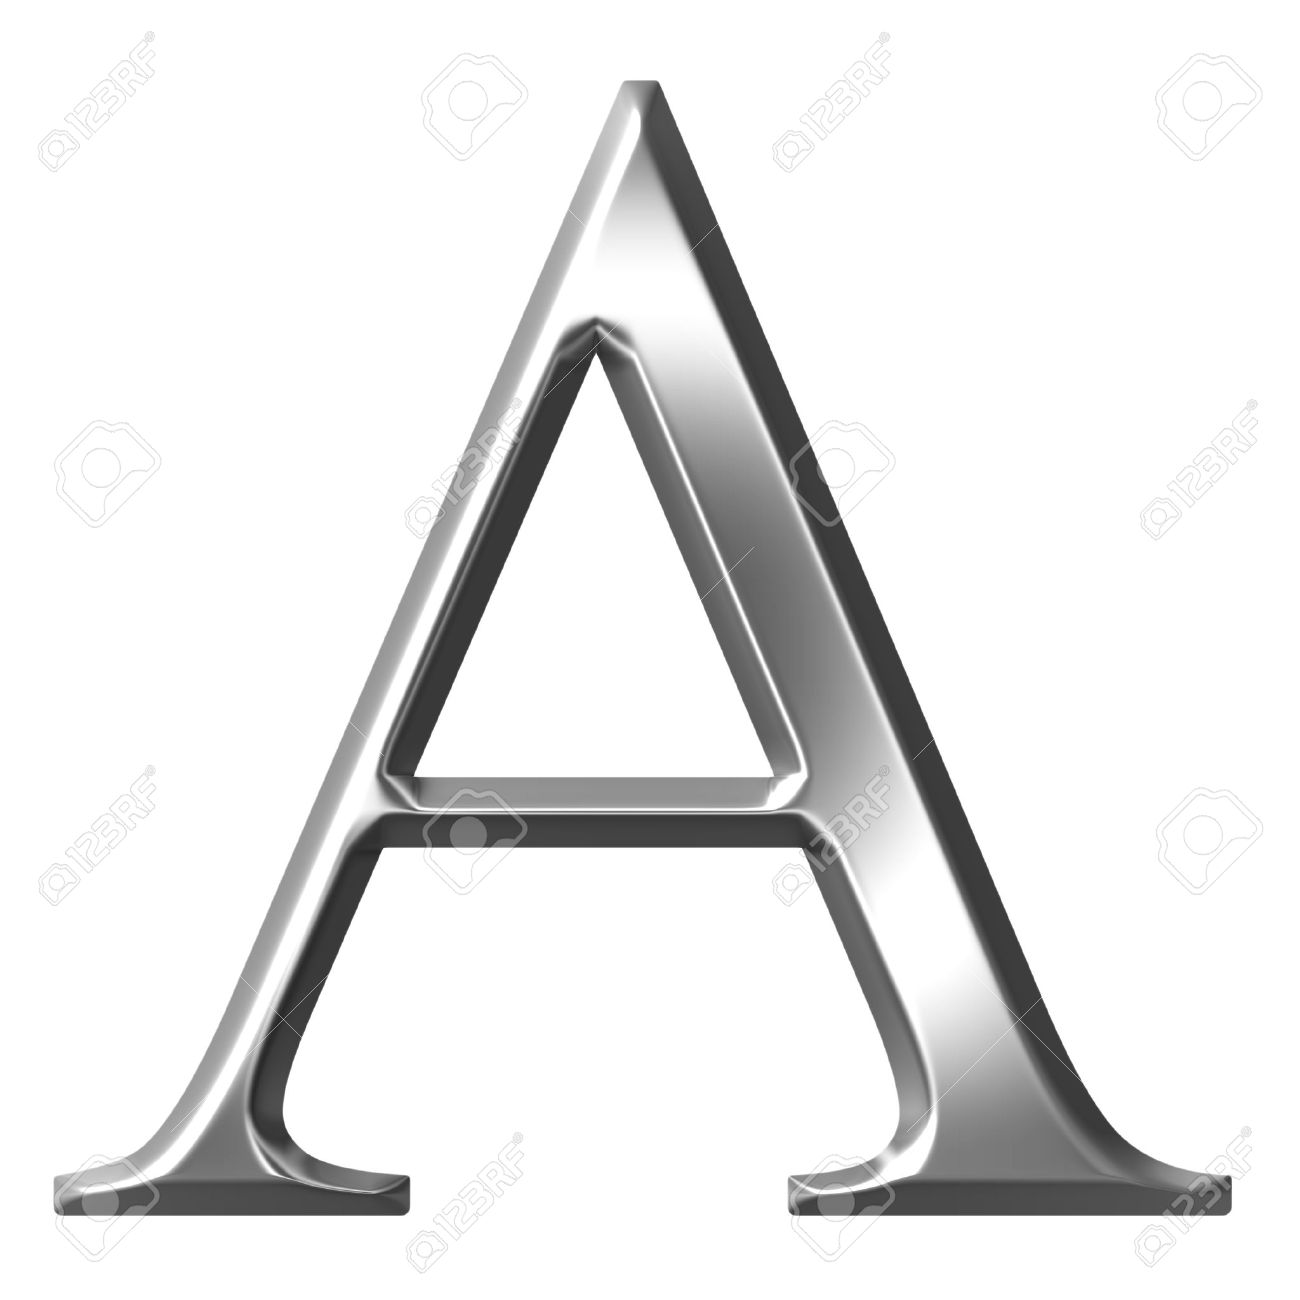 3d silver greek letter alpha stock photo picture and royalty free 3d silver greek letter alpha stock photo 7321681 biocorpaavc Gallery